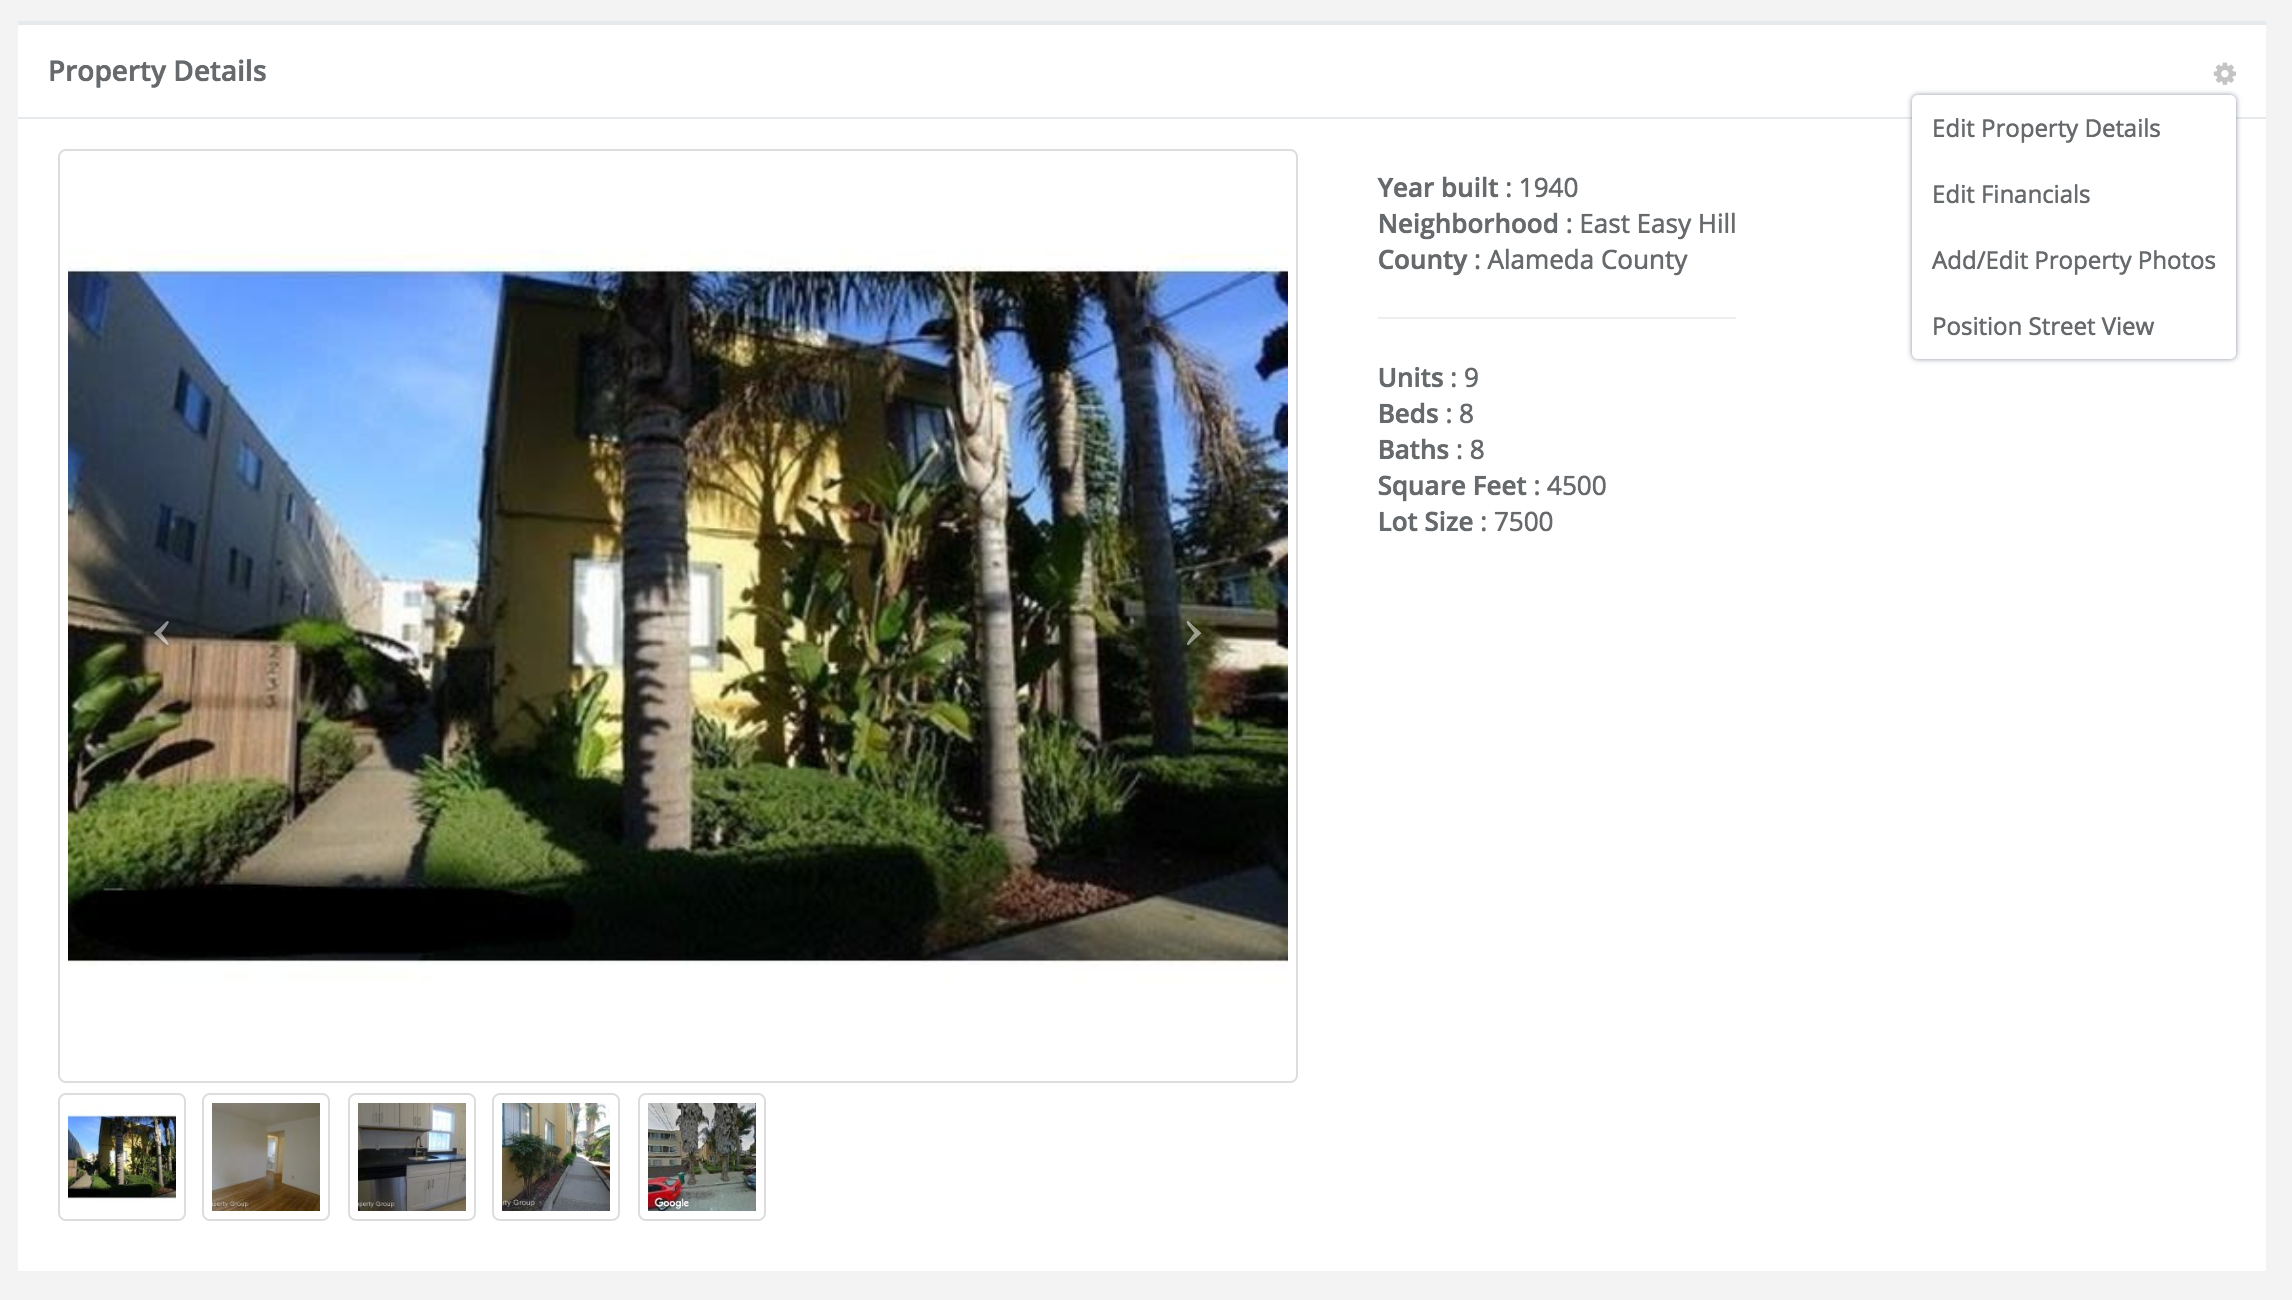 View property details, financials, and update basic property information